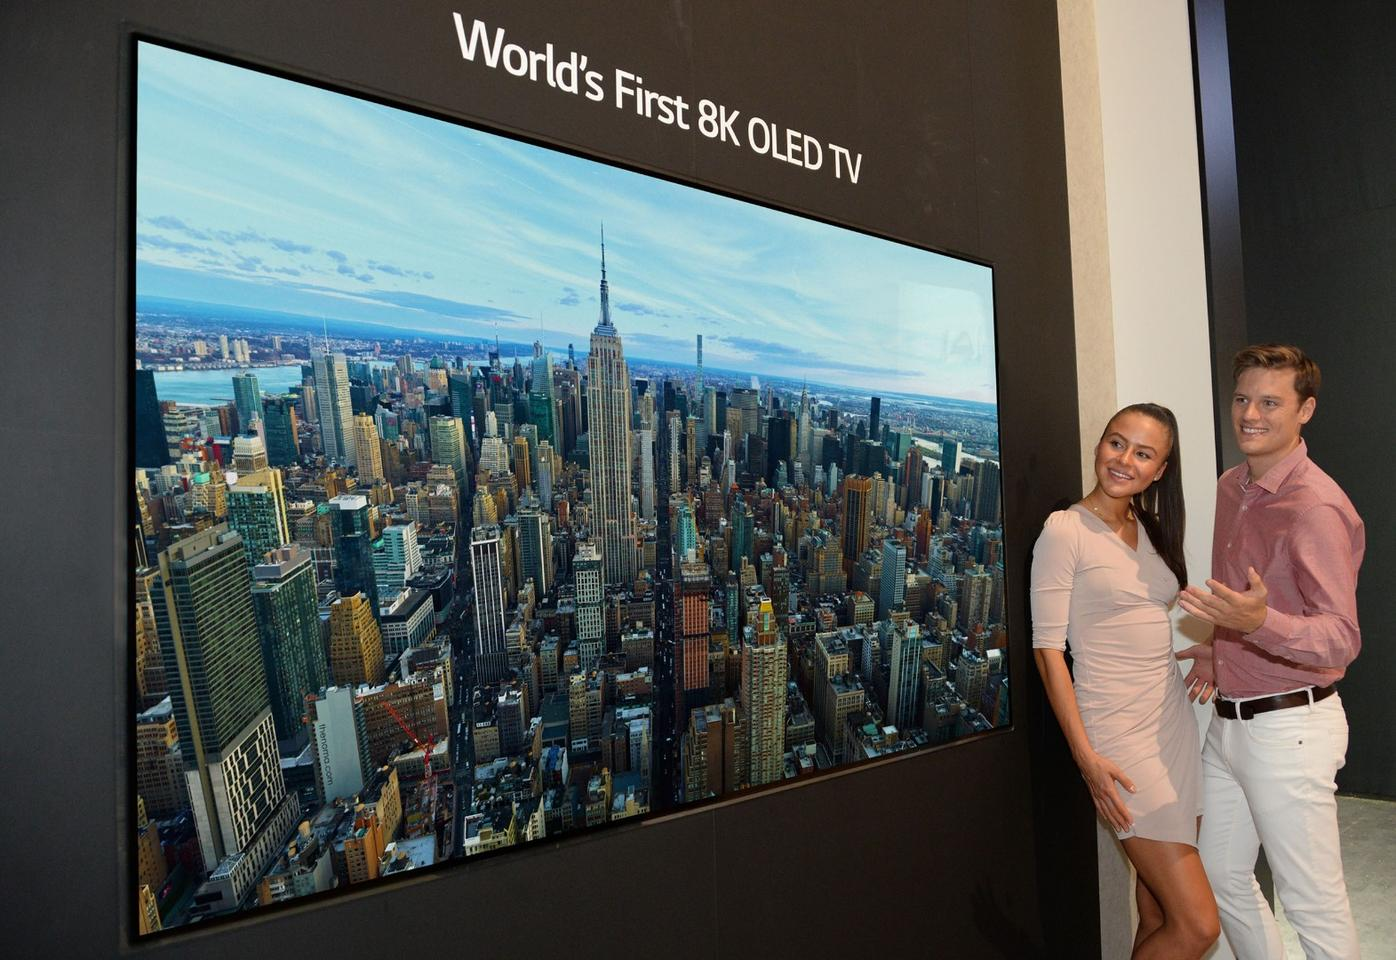 LG has confirmed its intention to become the first to mass produce large screen OLED TVs, like this 88-inch 8K behemoth